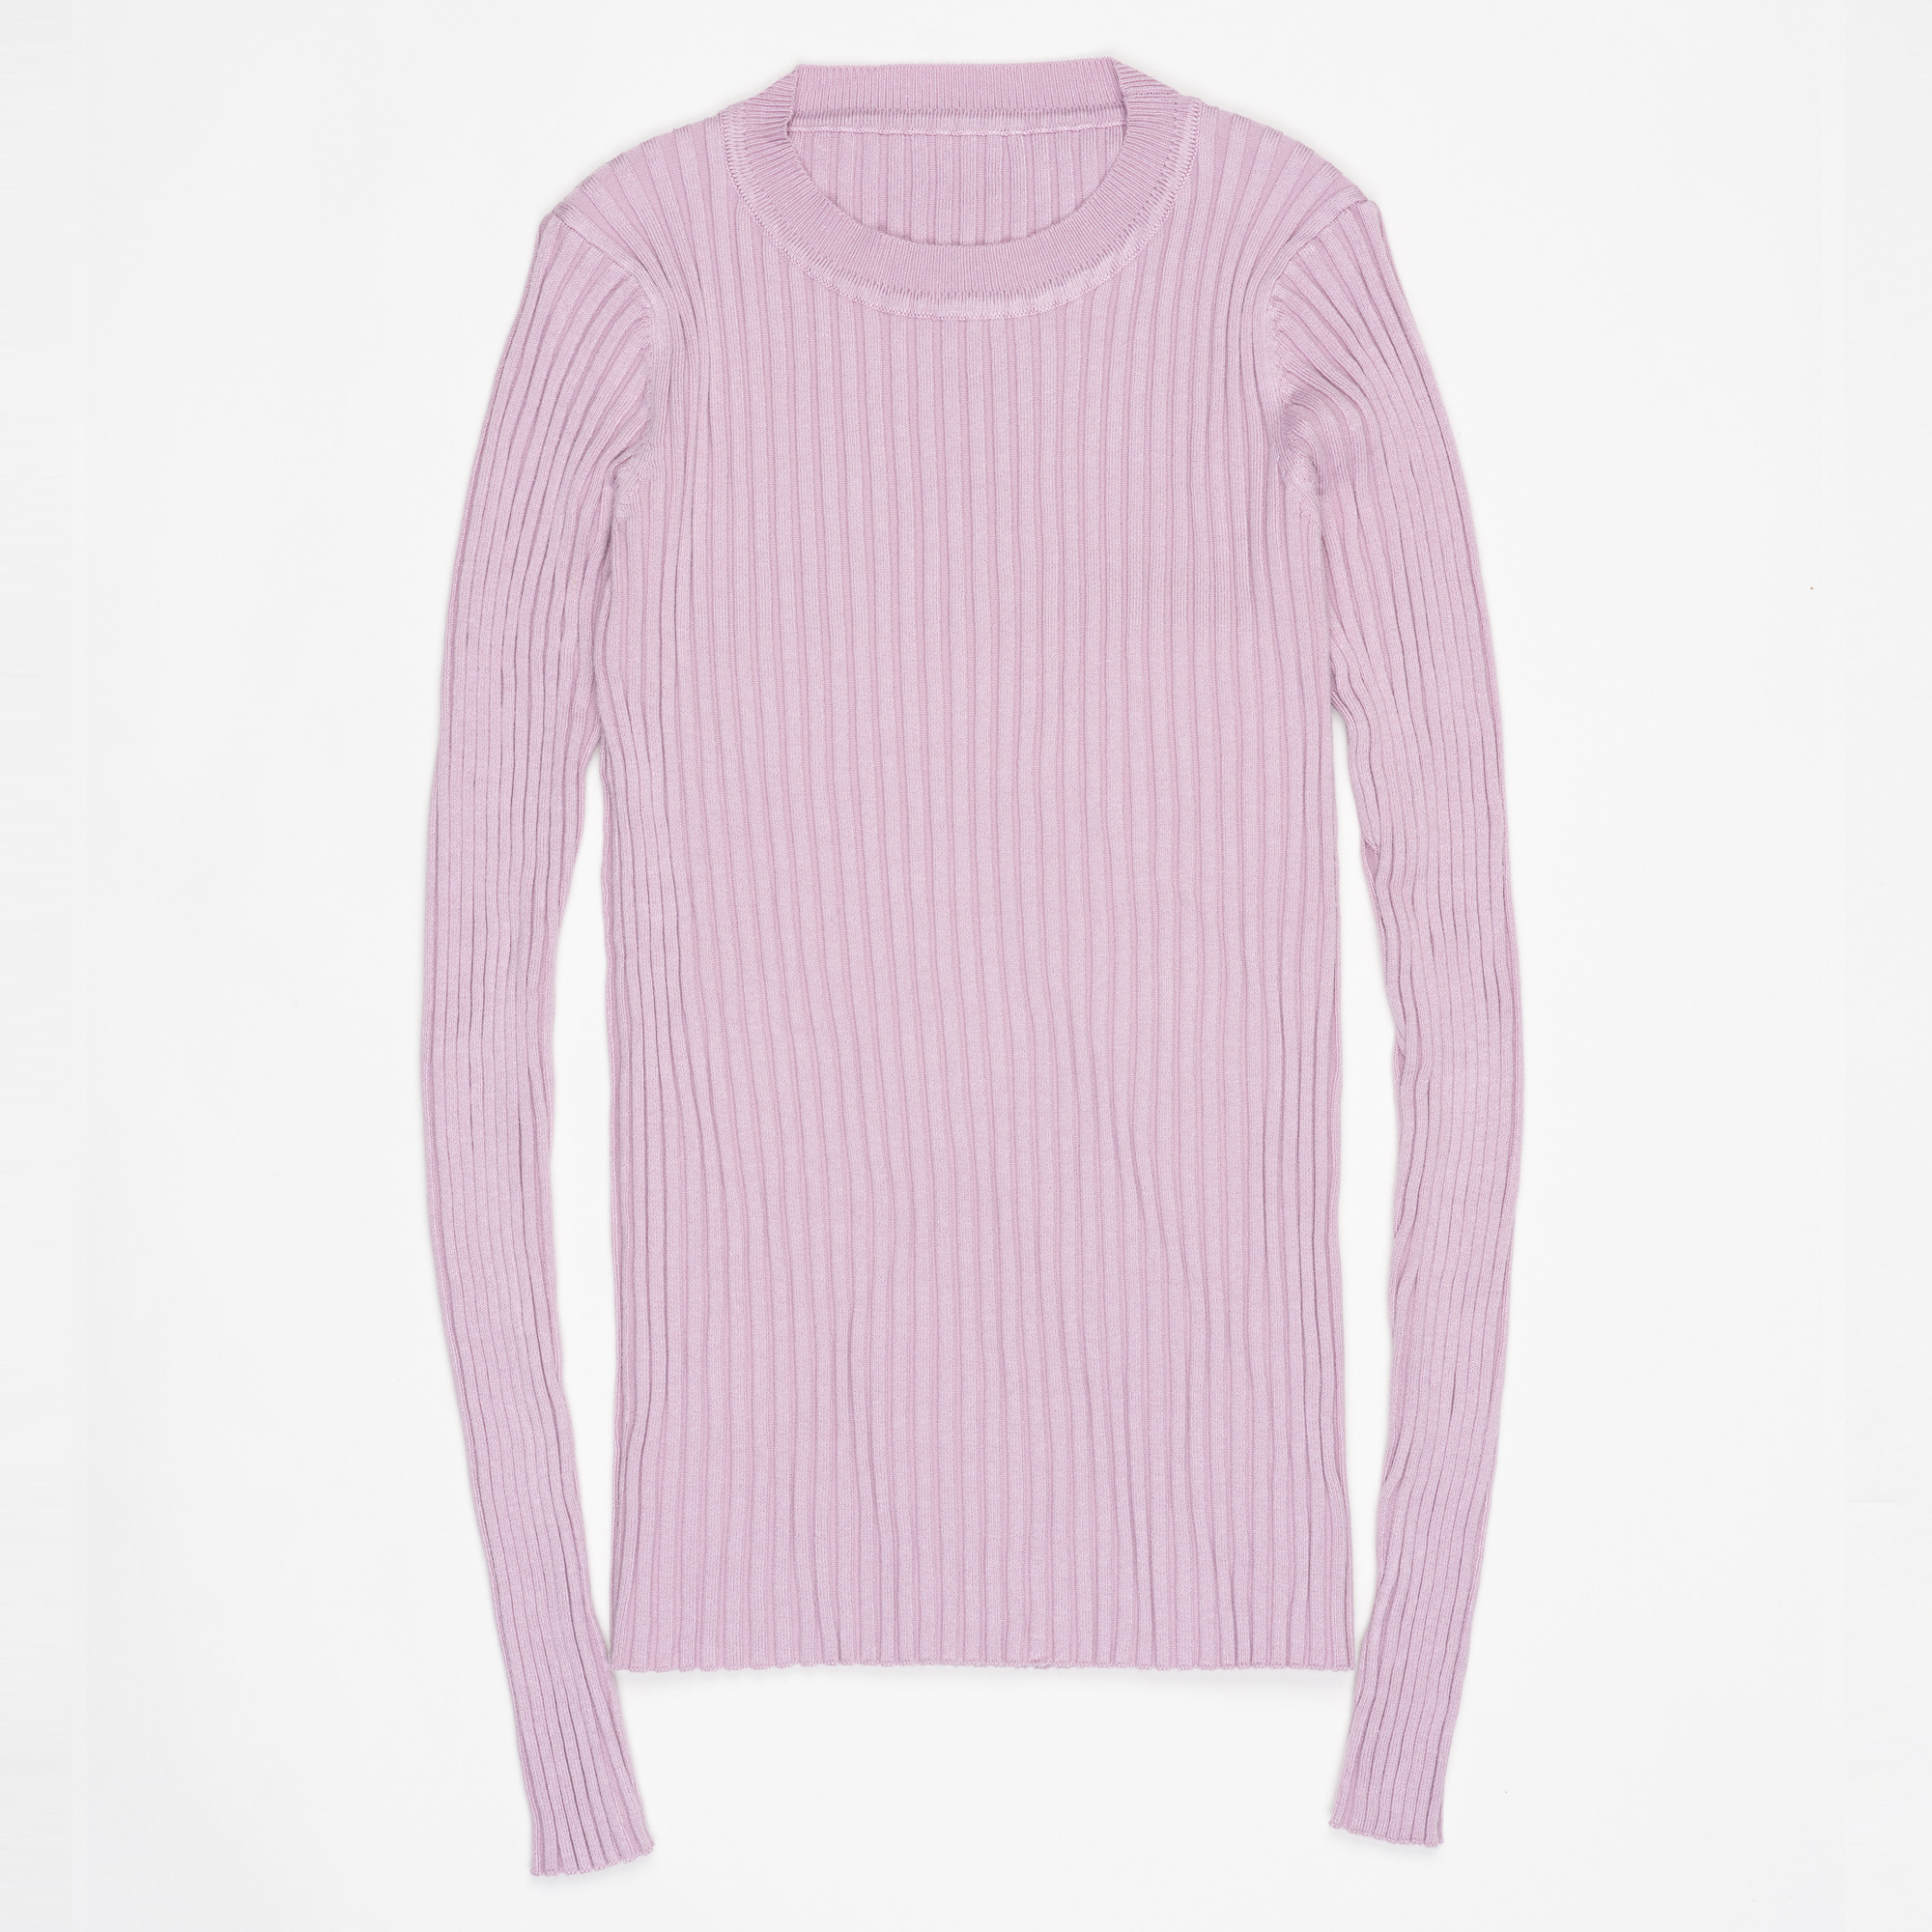 Women Sweater Pullover Basic Ribbed Sweaters Cotton Tops Knitted Solid Crew Neck With Thumb Hole 32